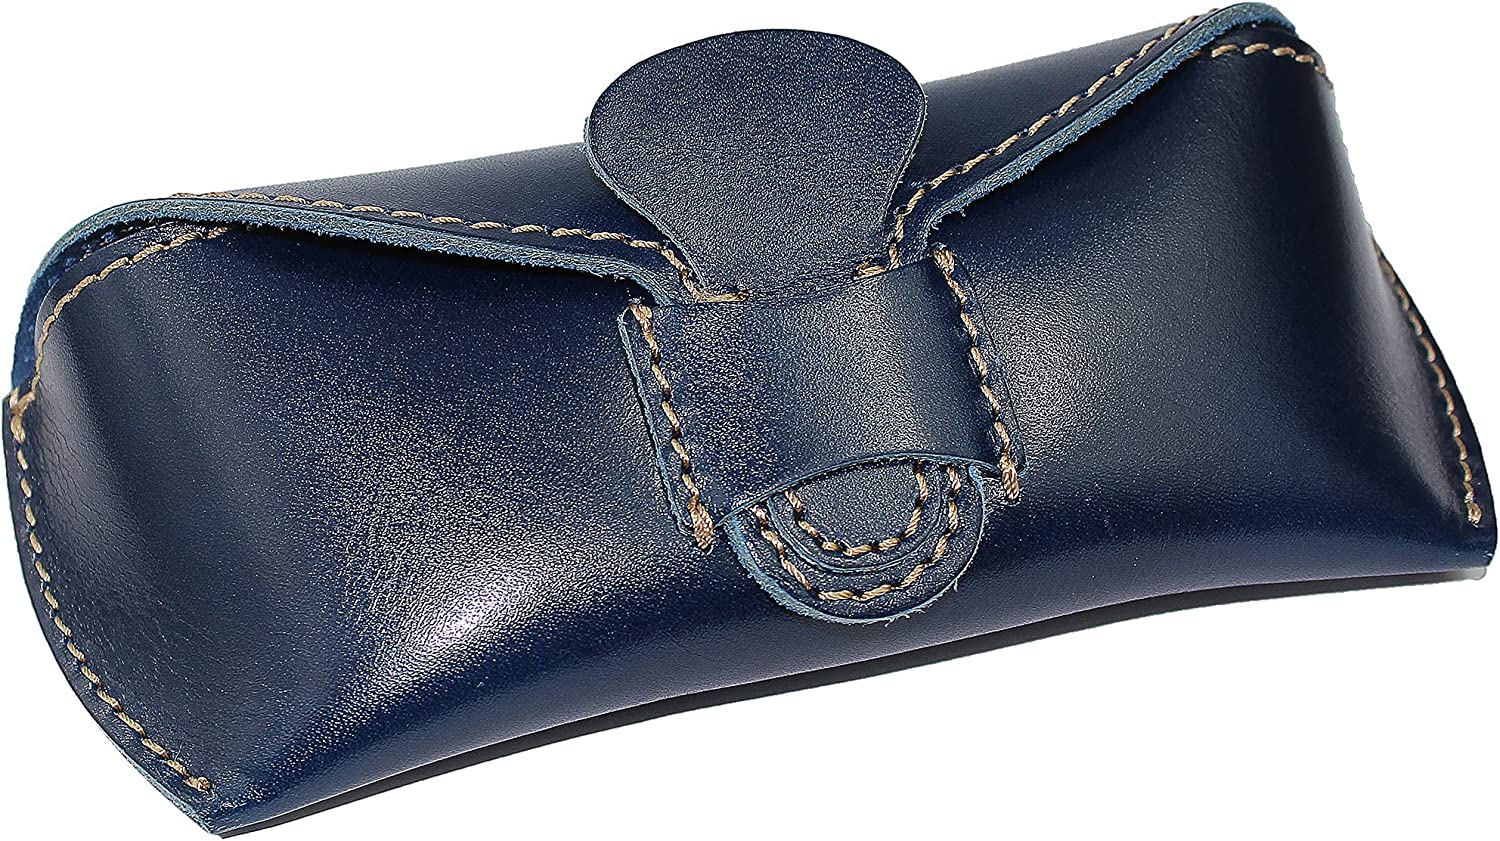 DK86 Genuine Leather Glasses Case Sunglasses Pouch Eyeglass Case, with Belt Loop, for Men and Women (3#Blue)